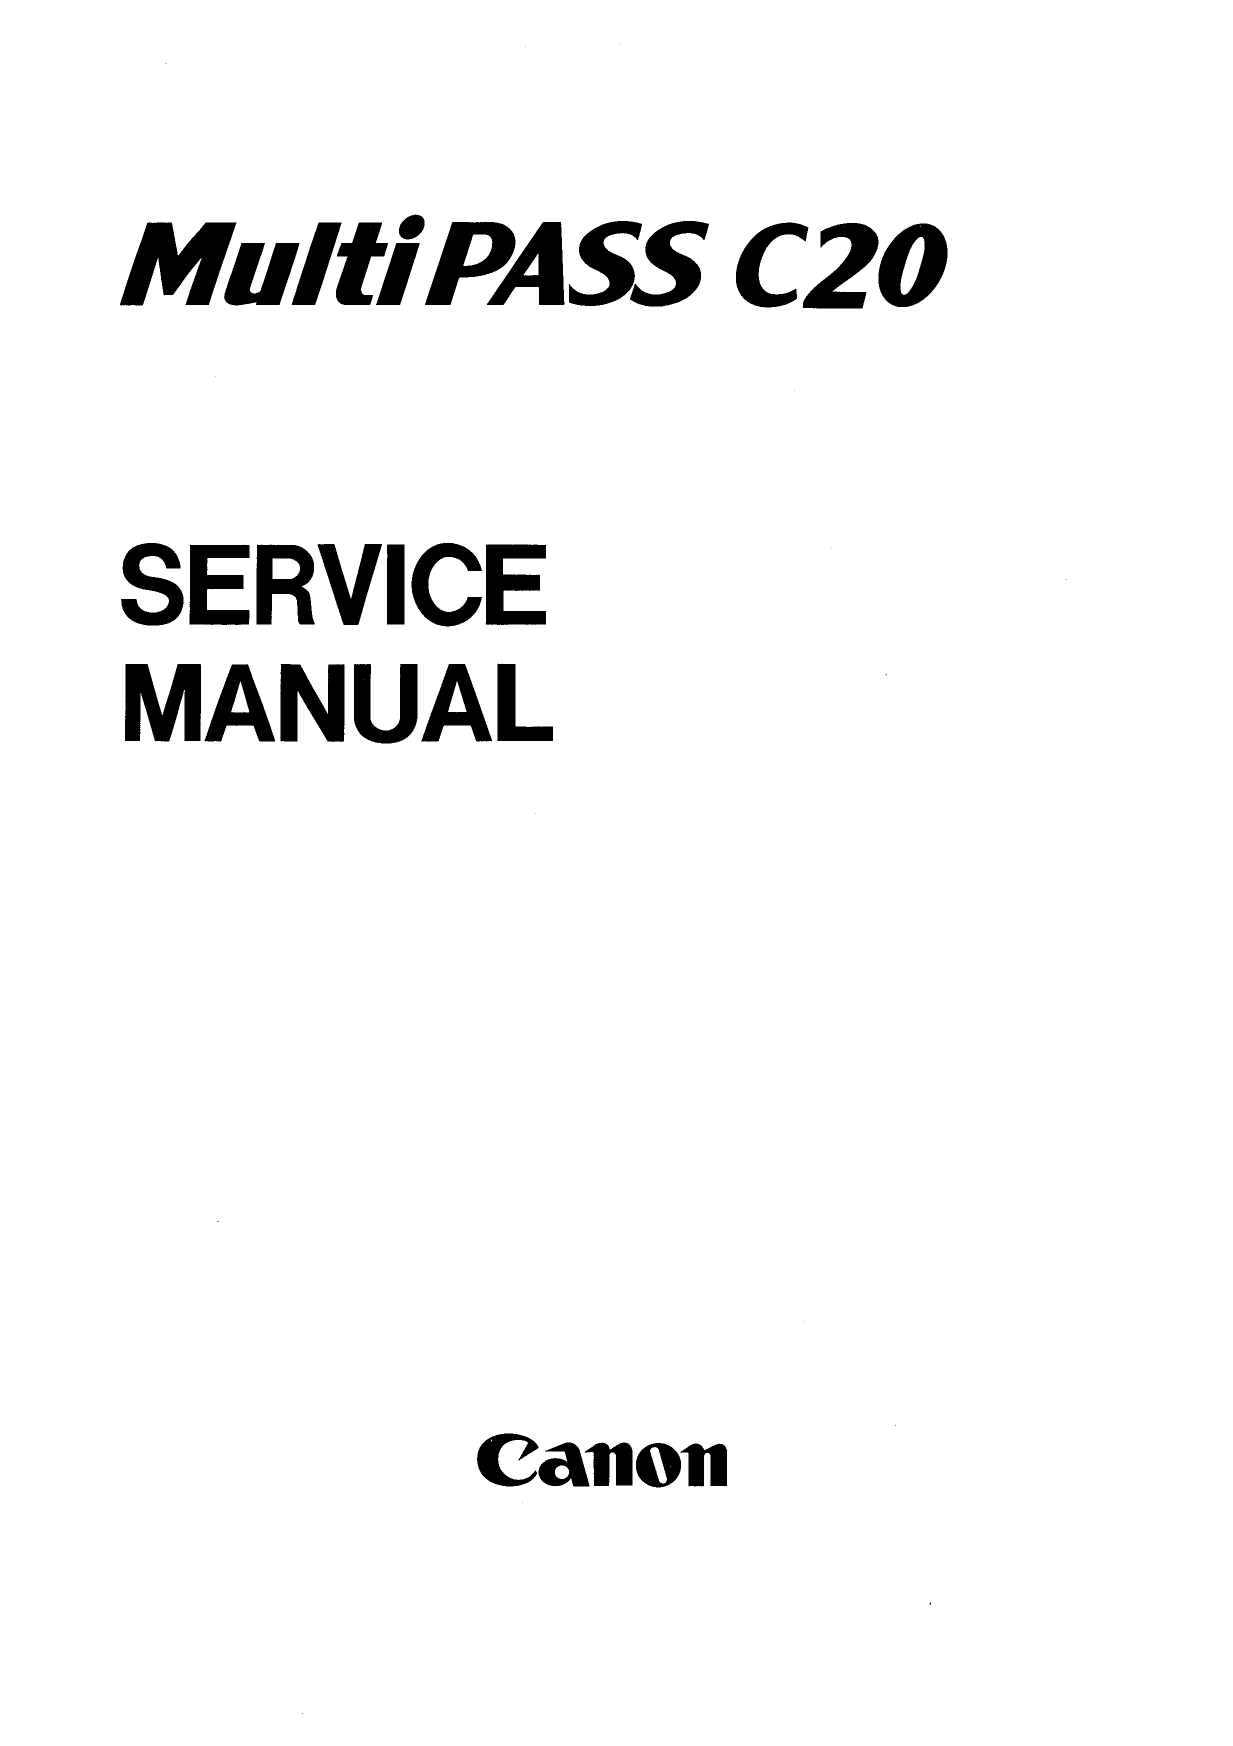 Canon FAX MultiPass-C20 Parts and Service Manual-1